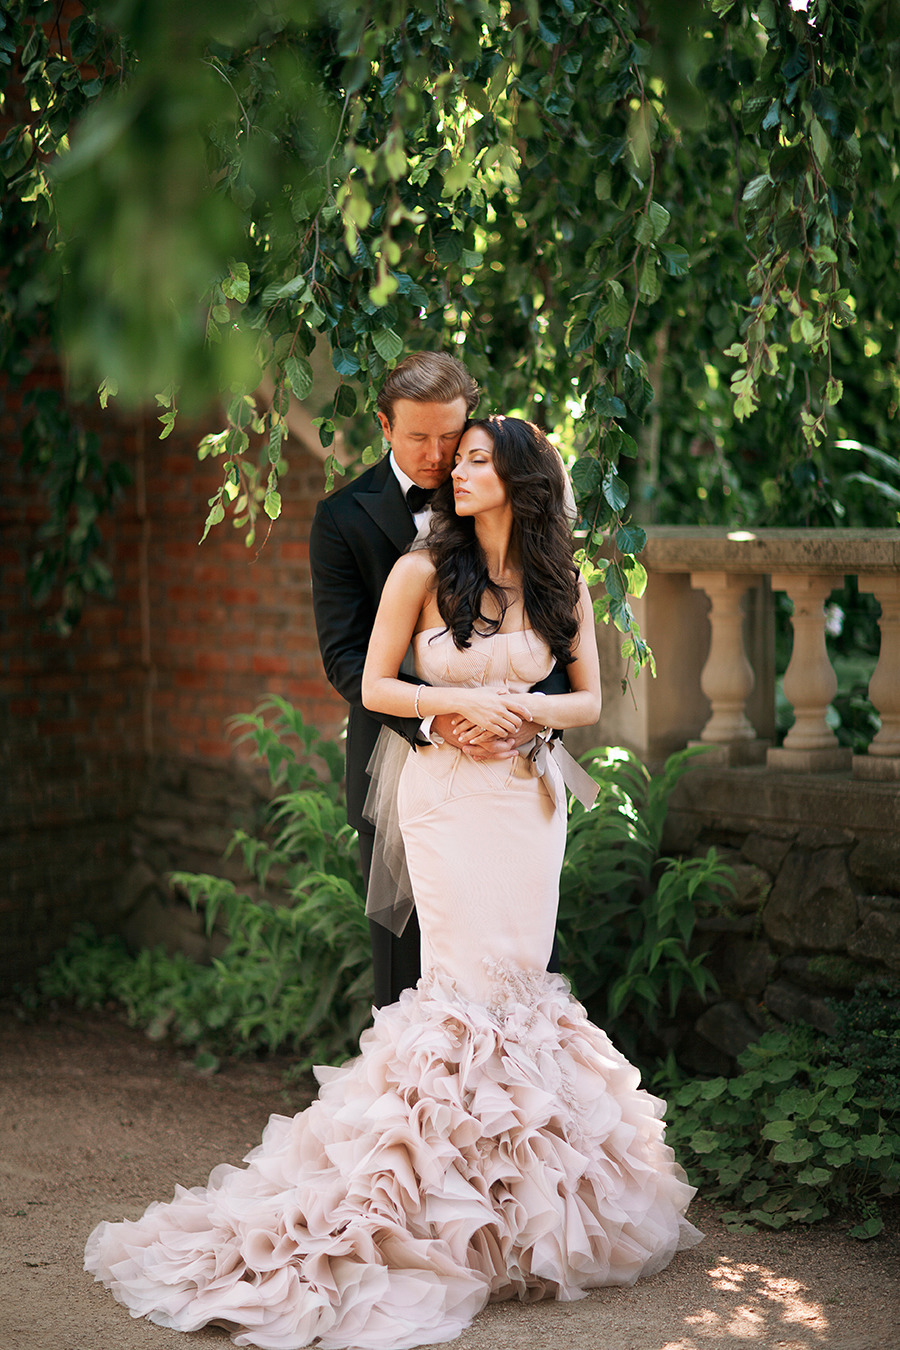 Handmade Wedding Dresses Chicago : Chicago wedding ky